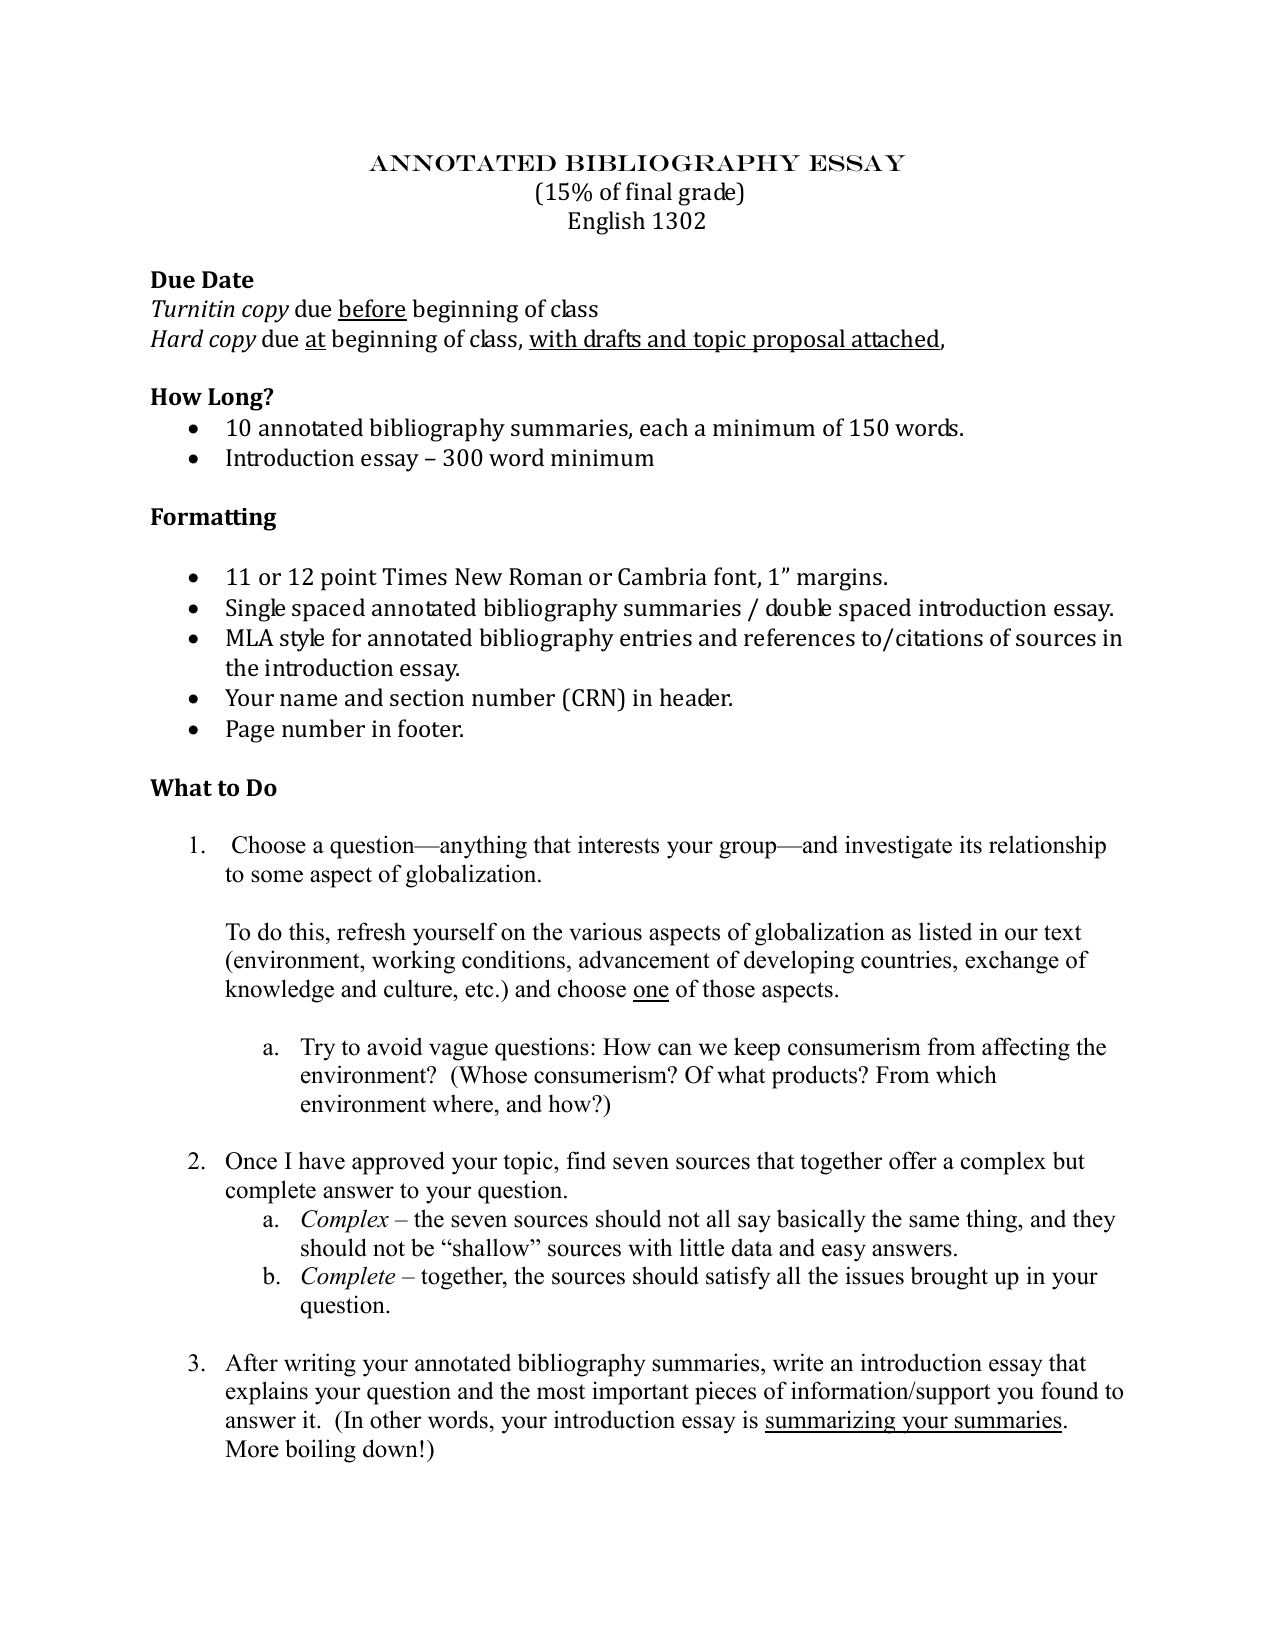 annotated bibliography 2 essay Annotated bibliography essay annotated bibliography- written section students' adaptation of study strategies when preparing for classroom tests:.